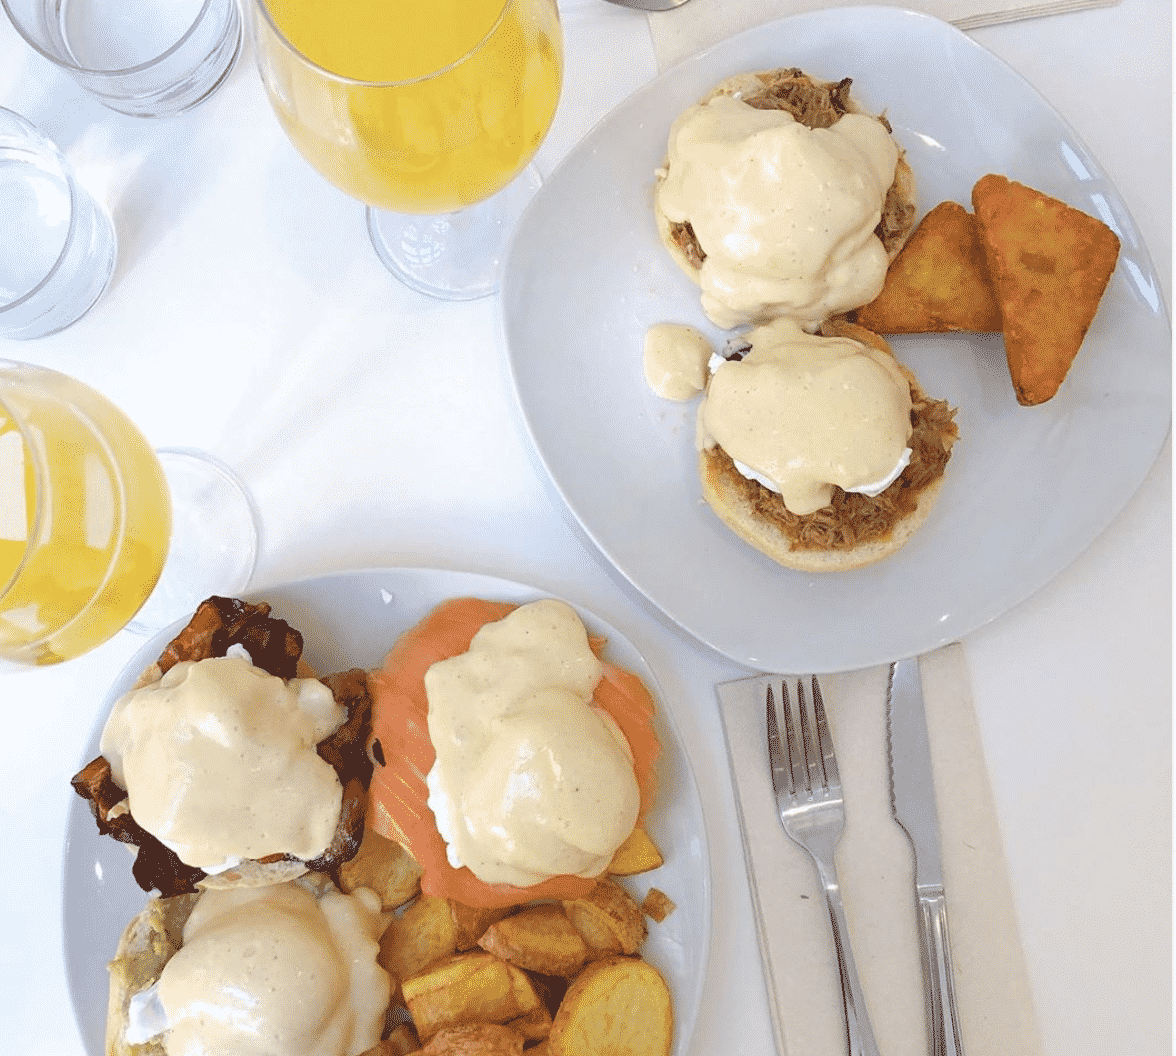 The best Madrid brunch spots